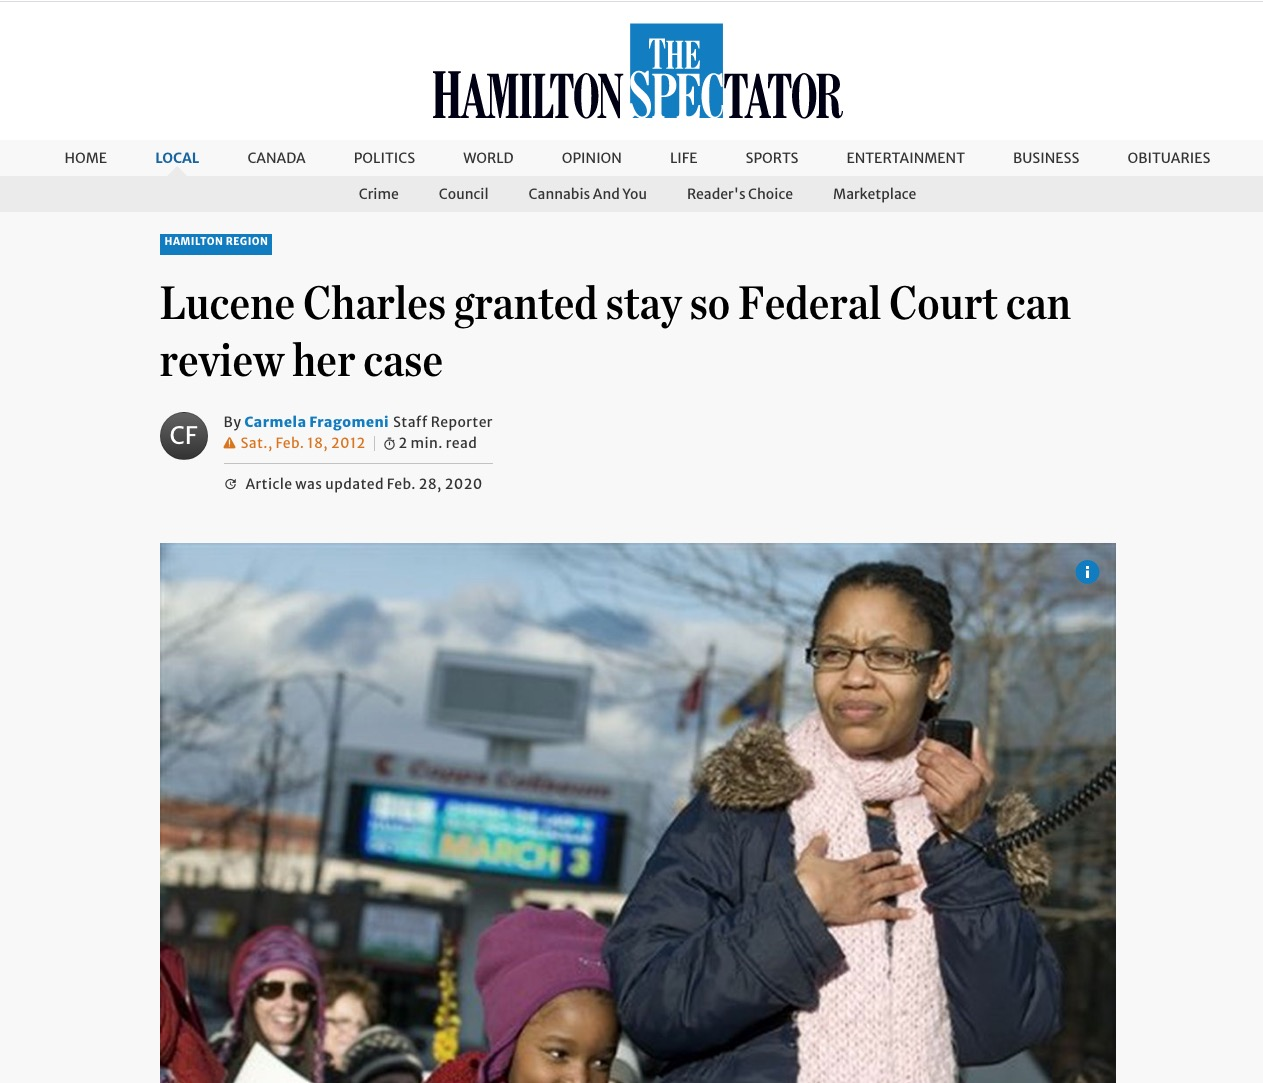 Jacqueline Swaisland – Lucene Charles granted stay so Federal Court can review her case